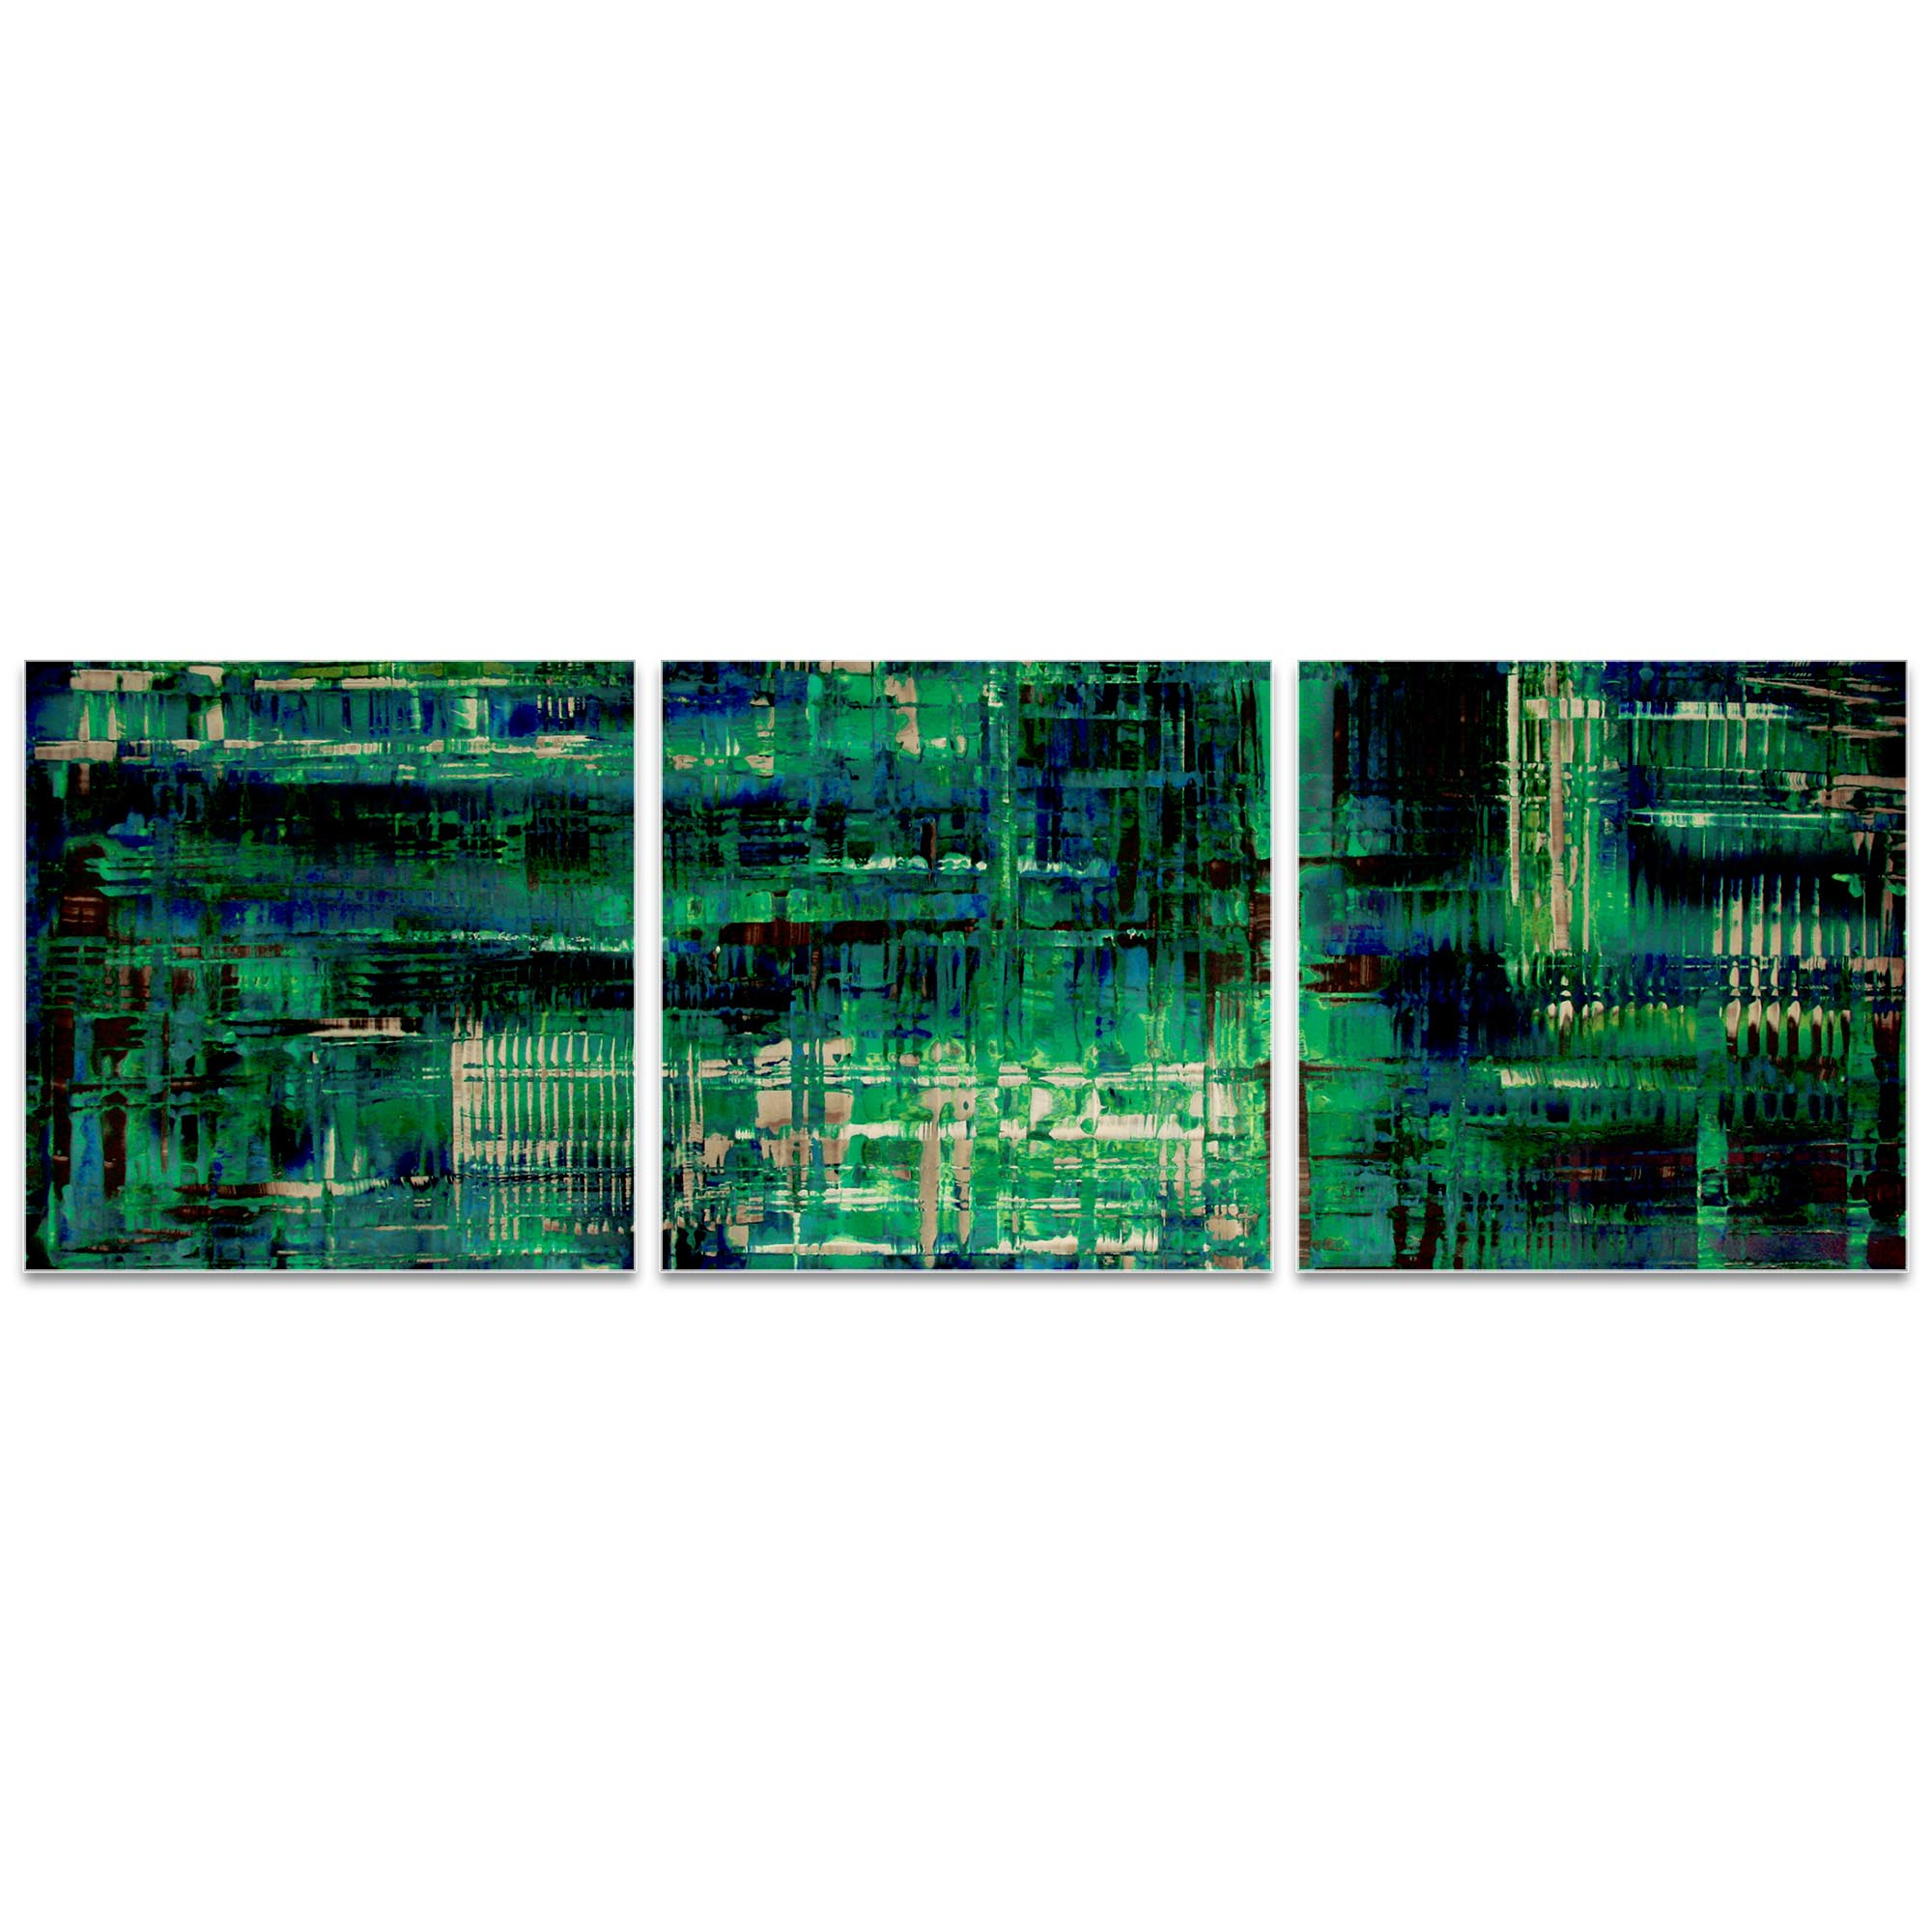 Aporia Blue Triptych Large 70x22in. Metal or Acrylic Contemporary Decor - Image 2